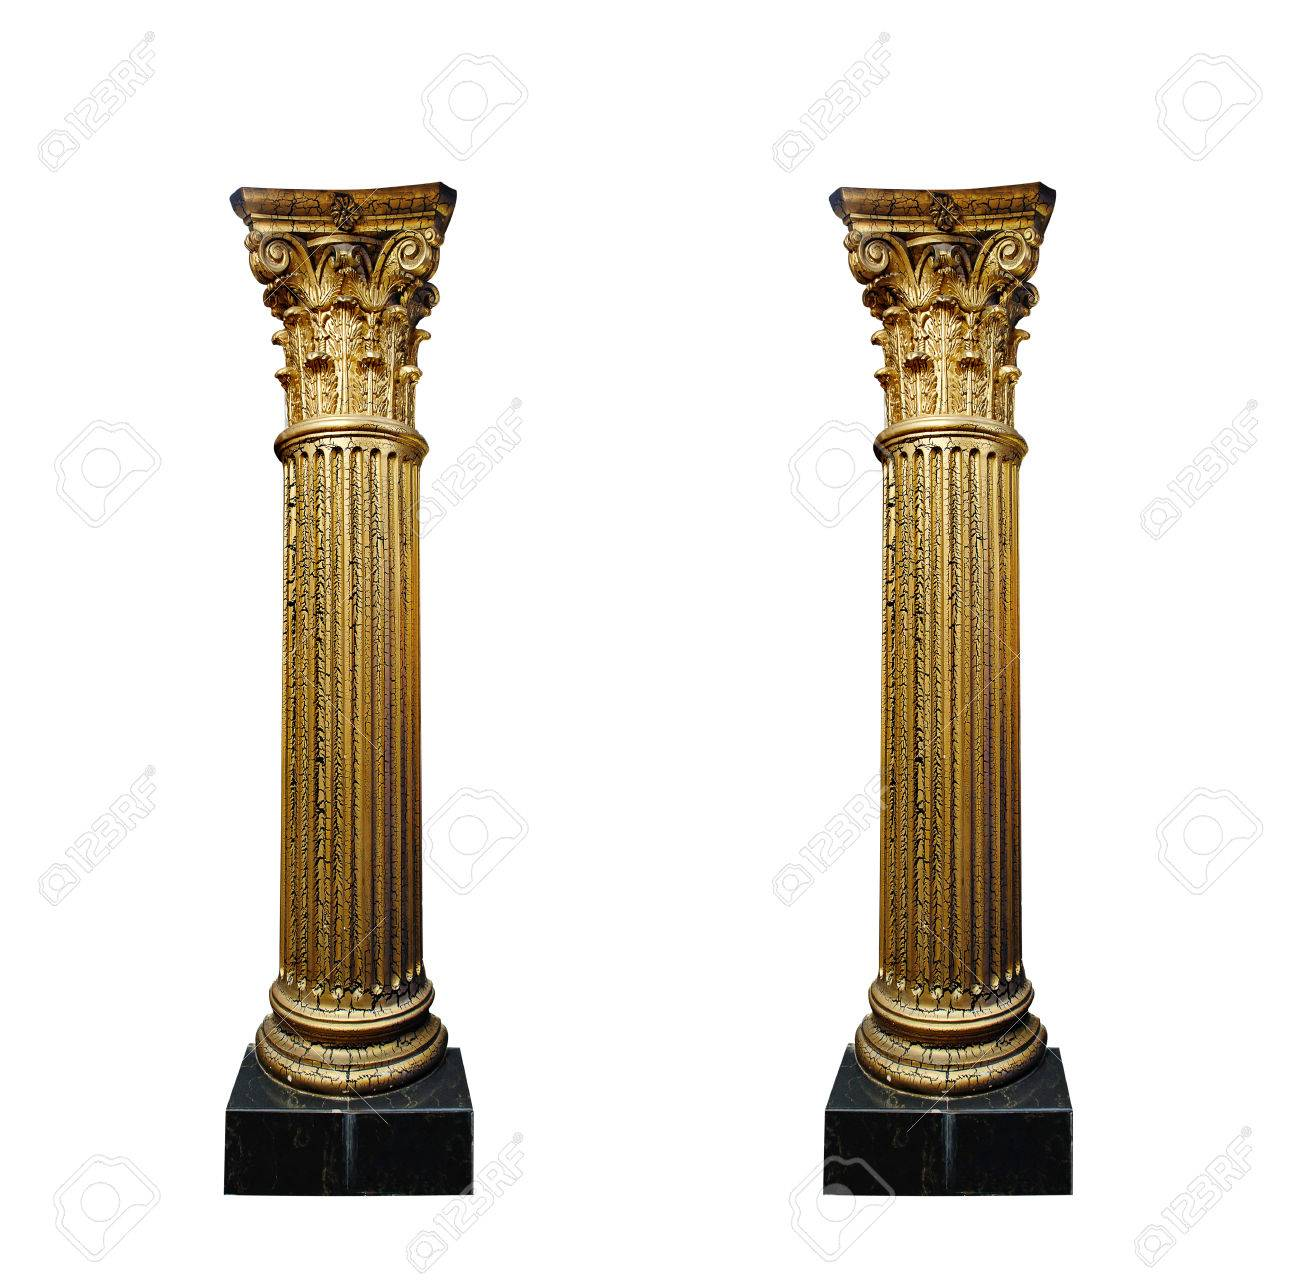 two gold columns isolated on white background. - 41863808